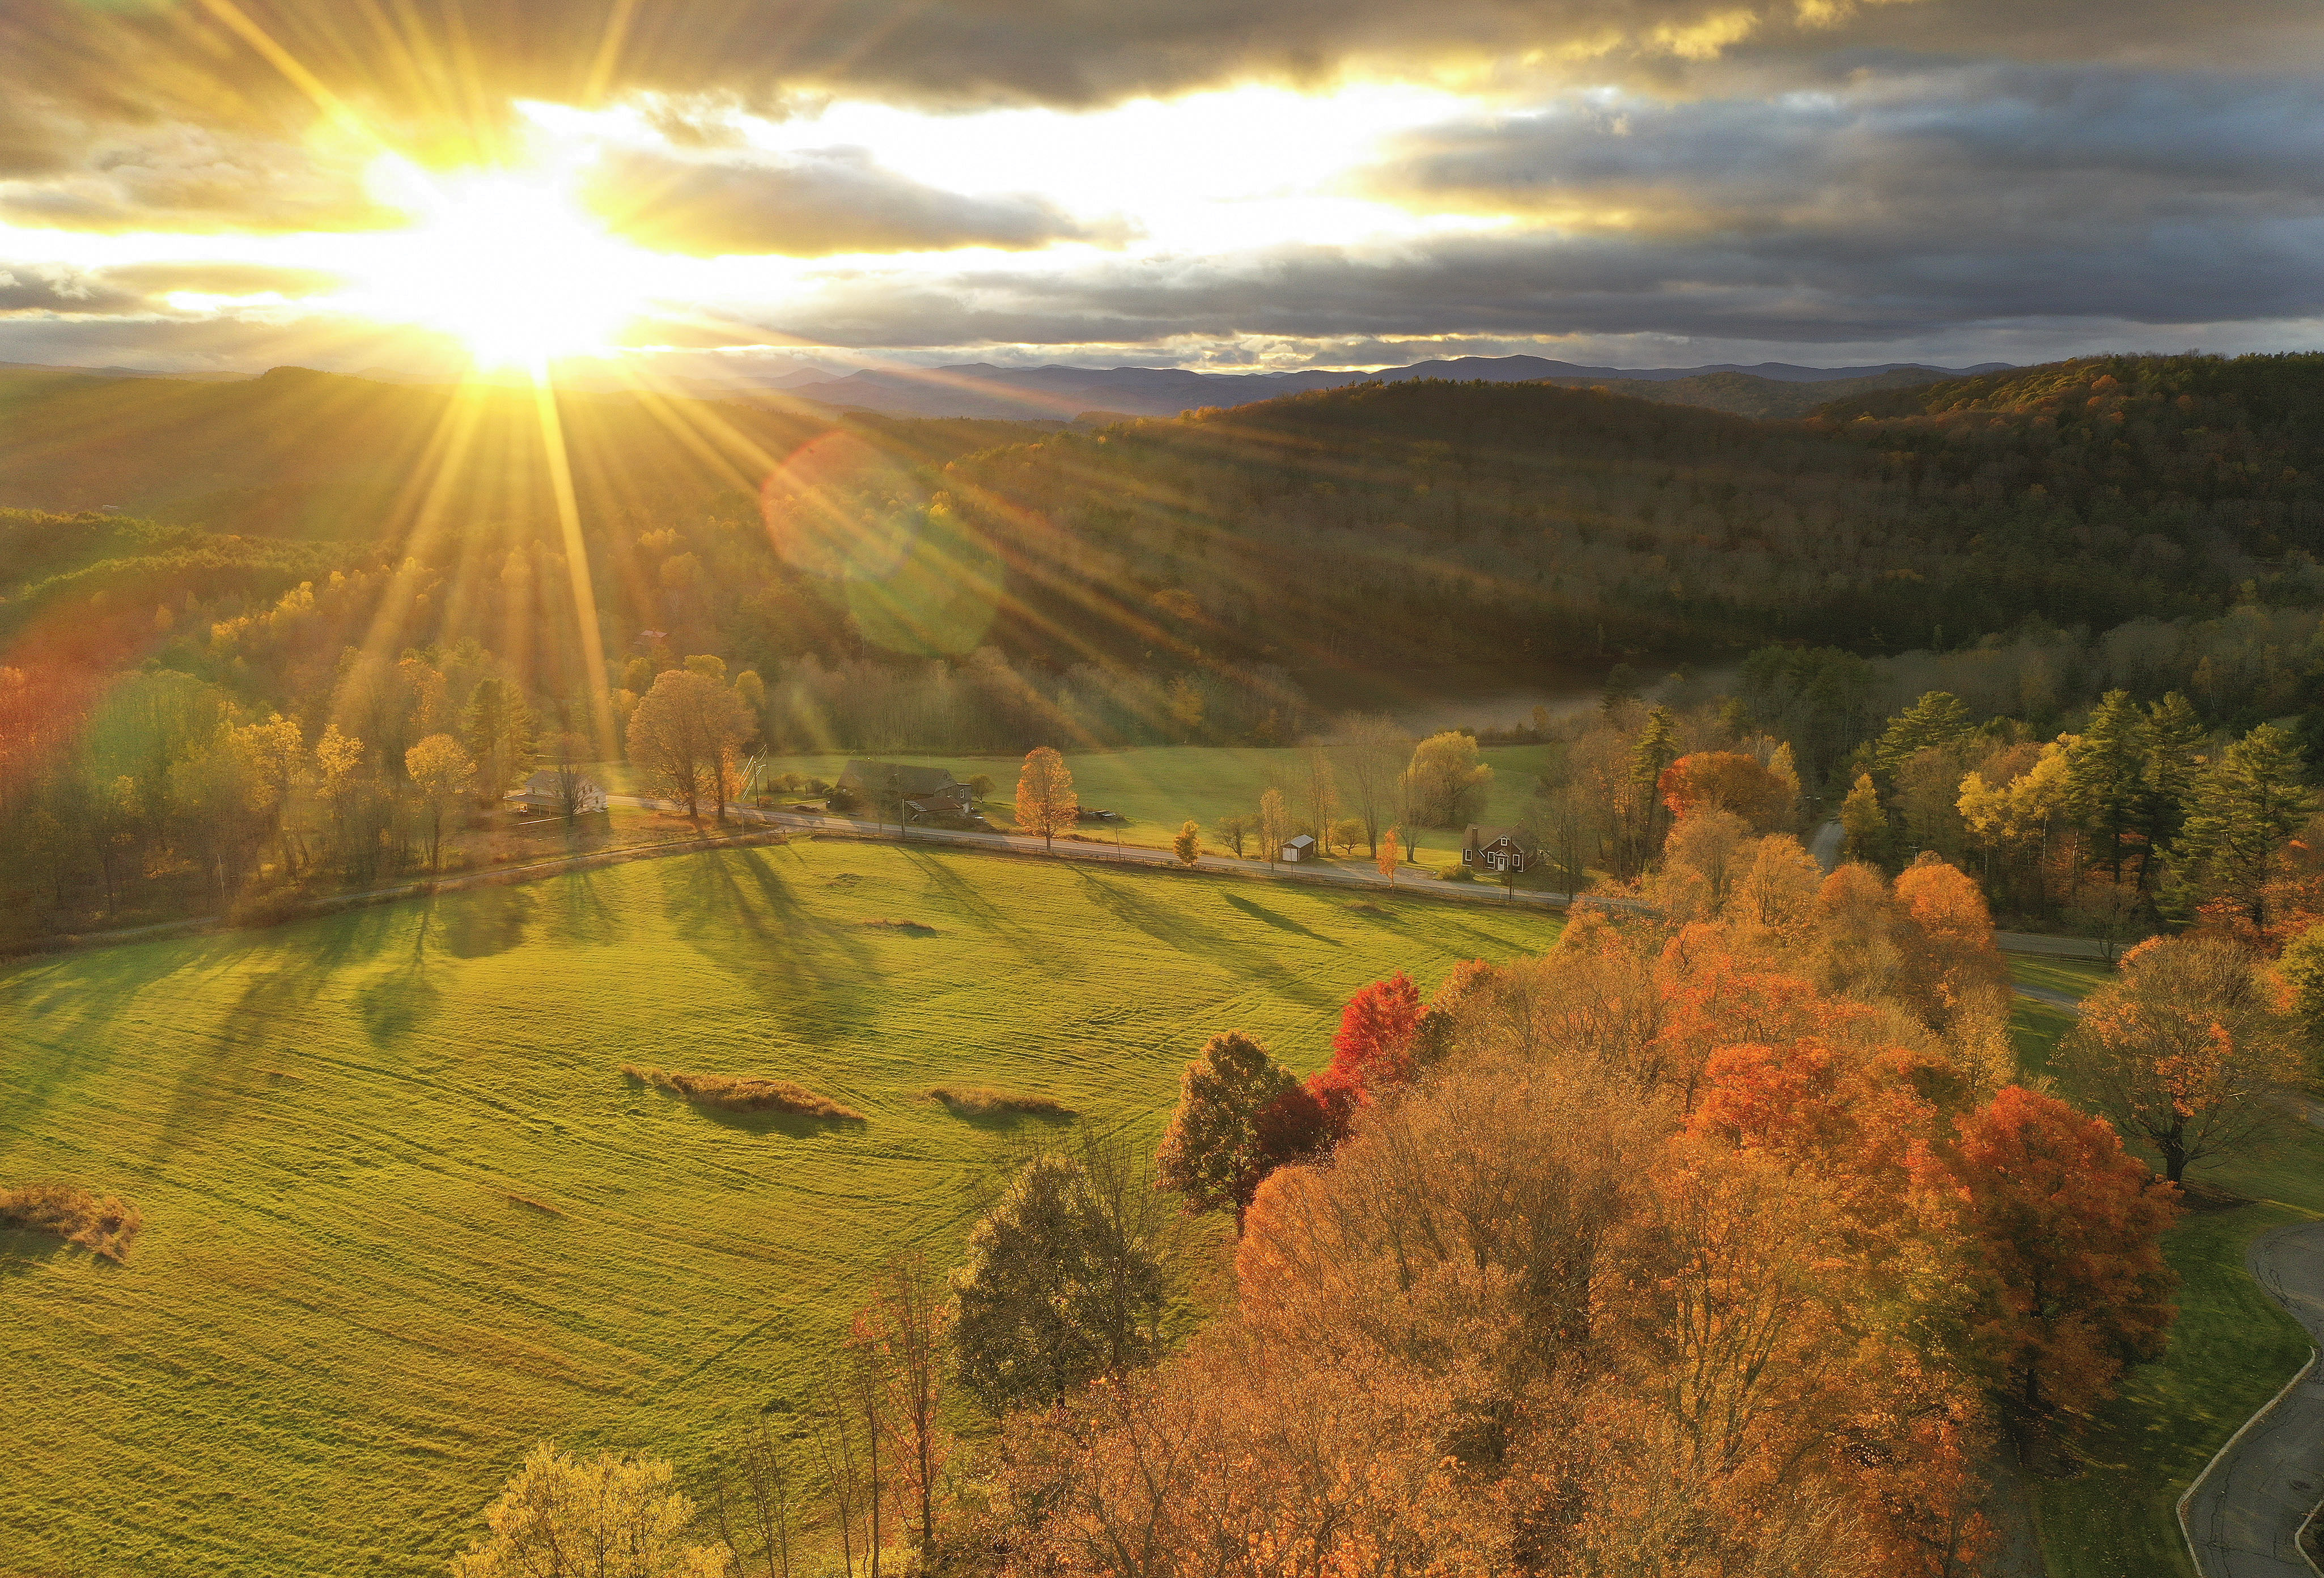 The sun sets at the Joseph Smith Birthplace Memorial in Sharon, Vt., on Oct. 18, 2019.